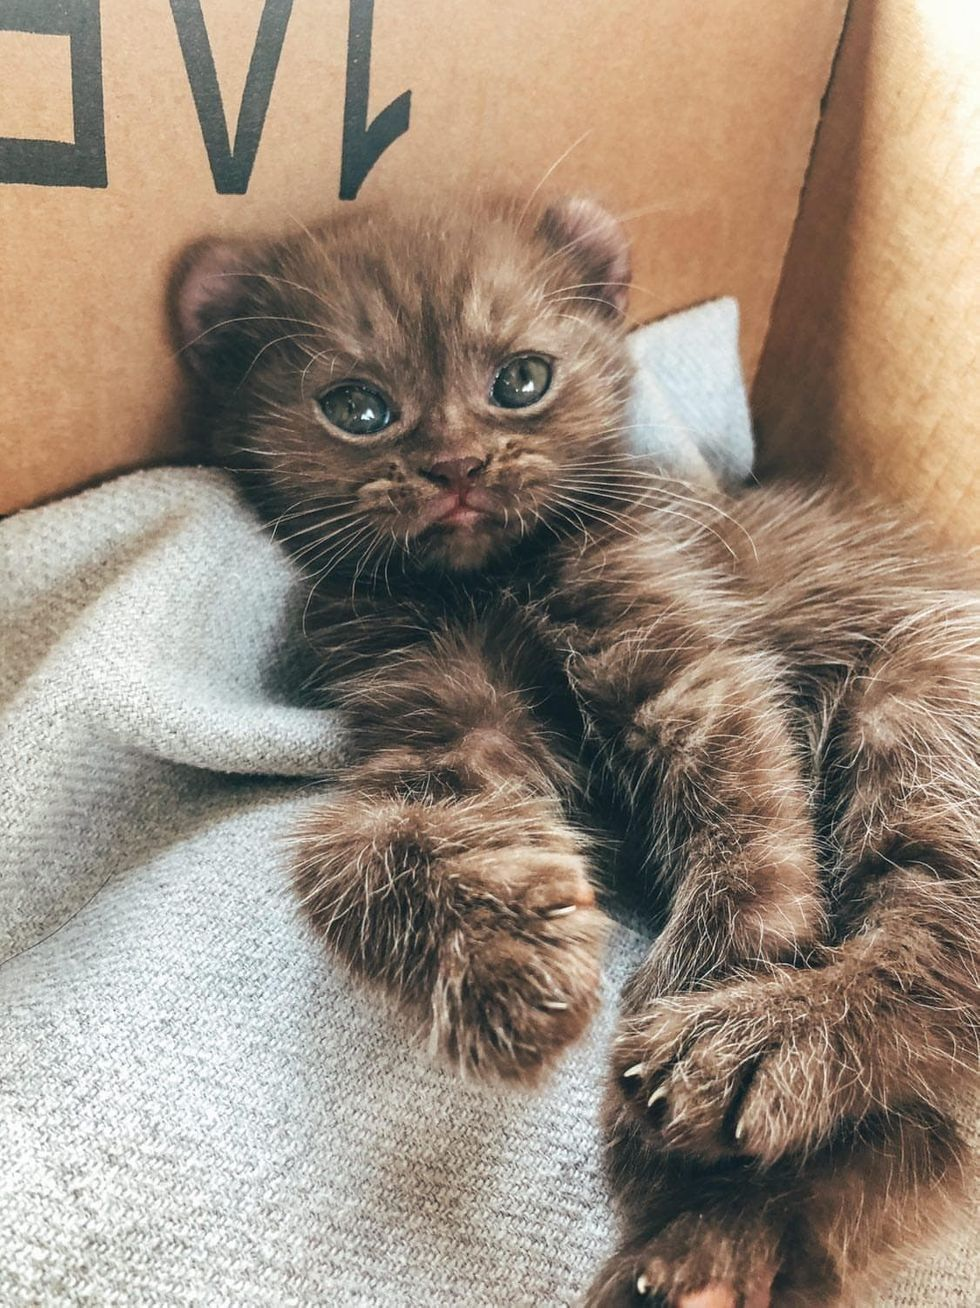 Kitten With Bear Ears And Twisted Legs Cuddles Family That Is Kind To Her Love Meow In 2020 Bear Ears Kitten Kittens Cutest